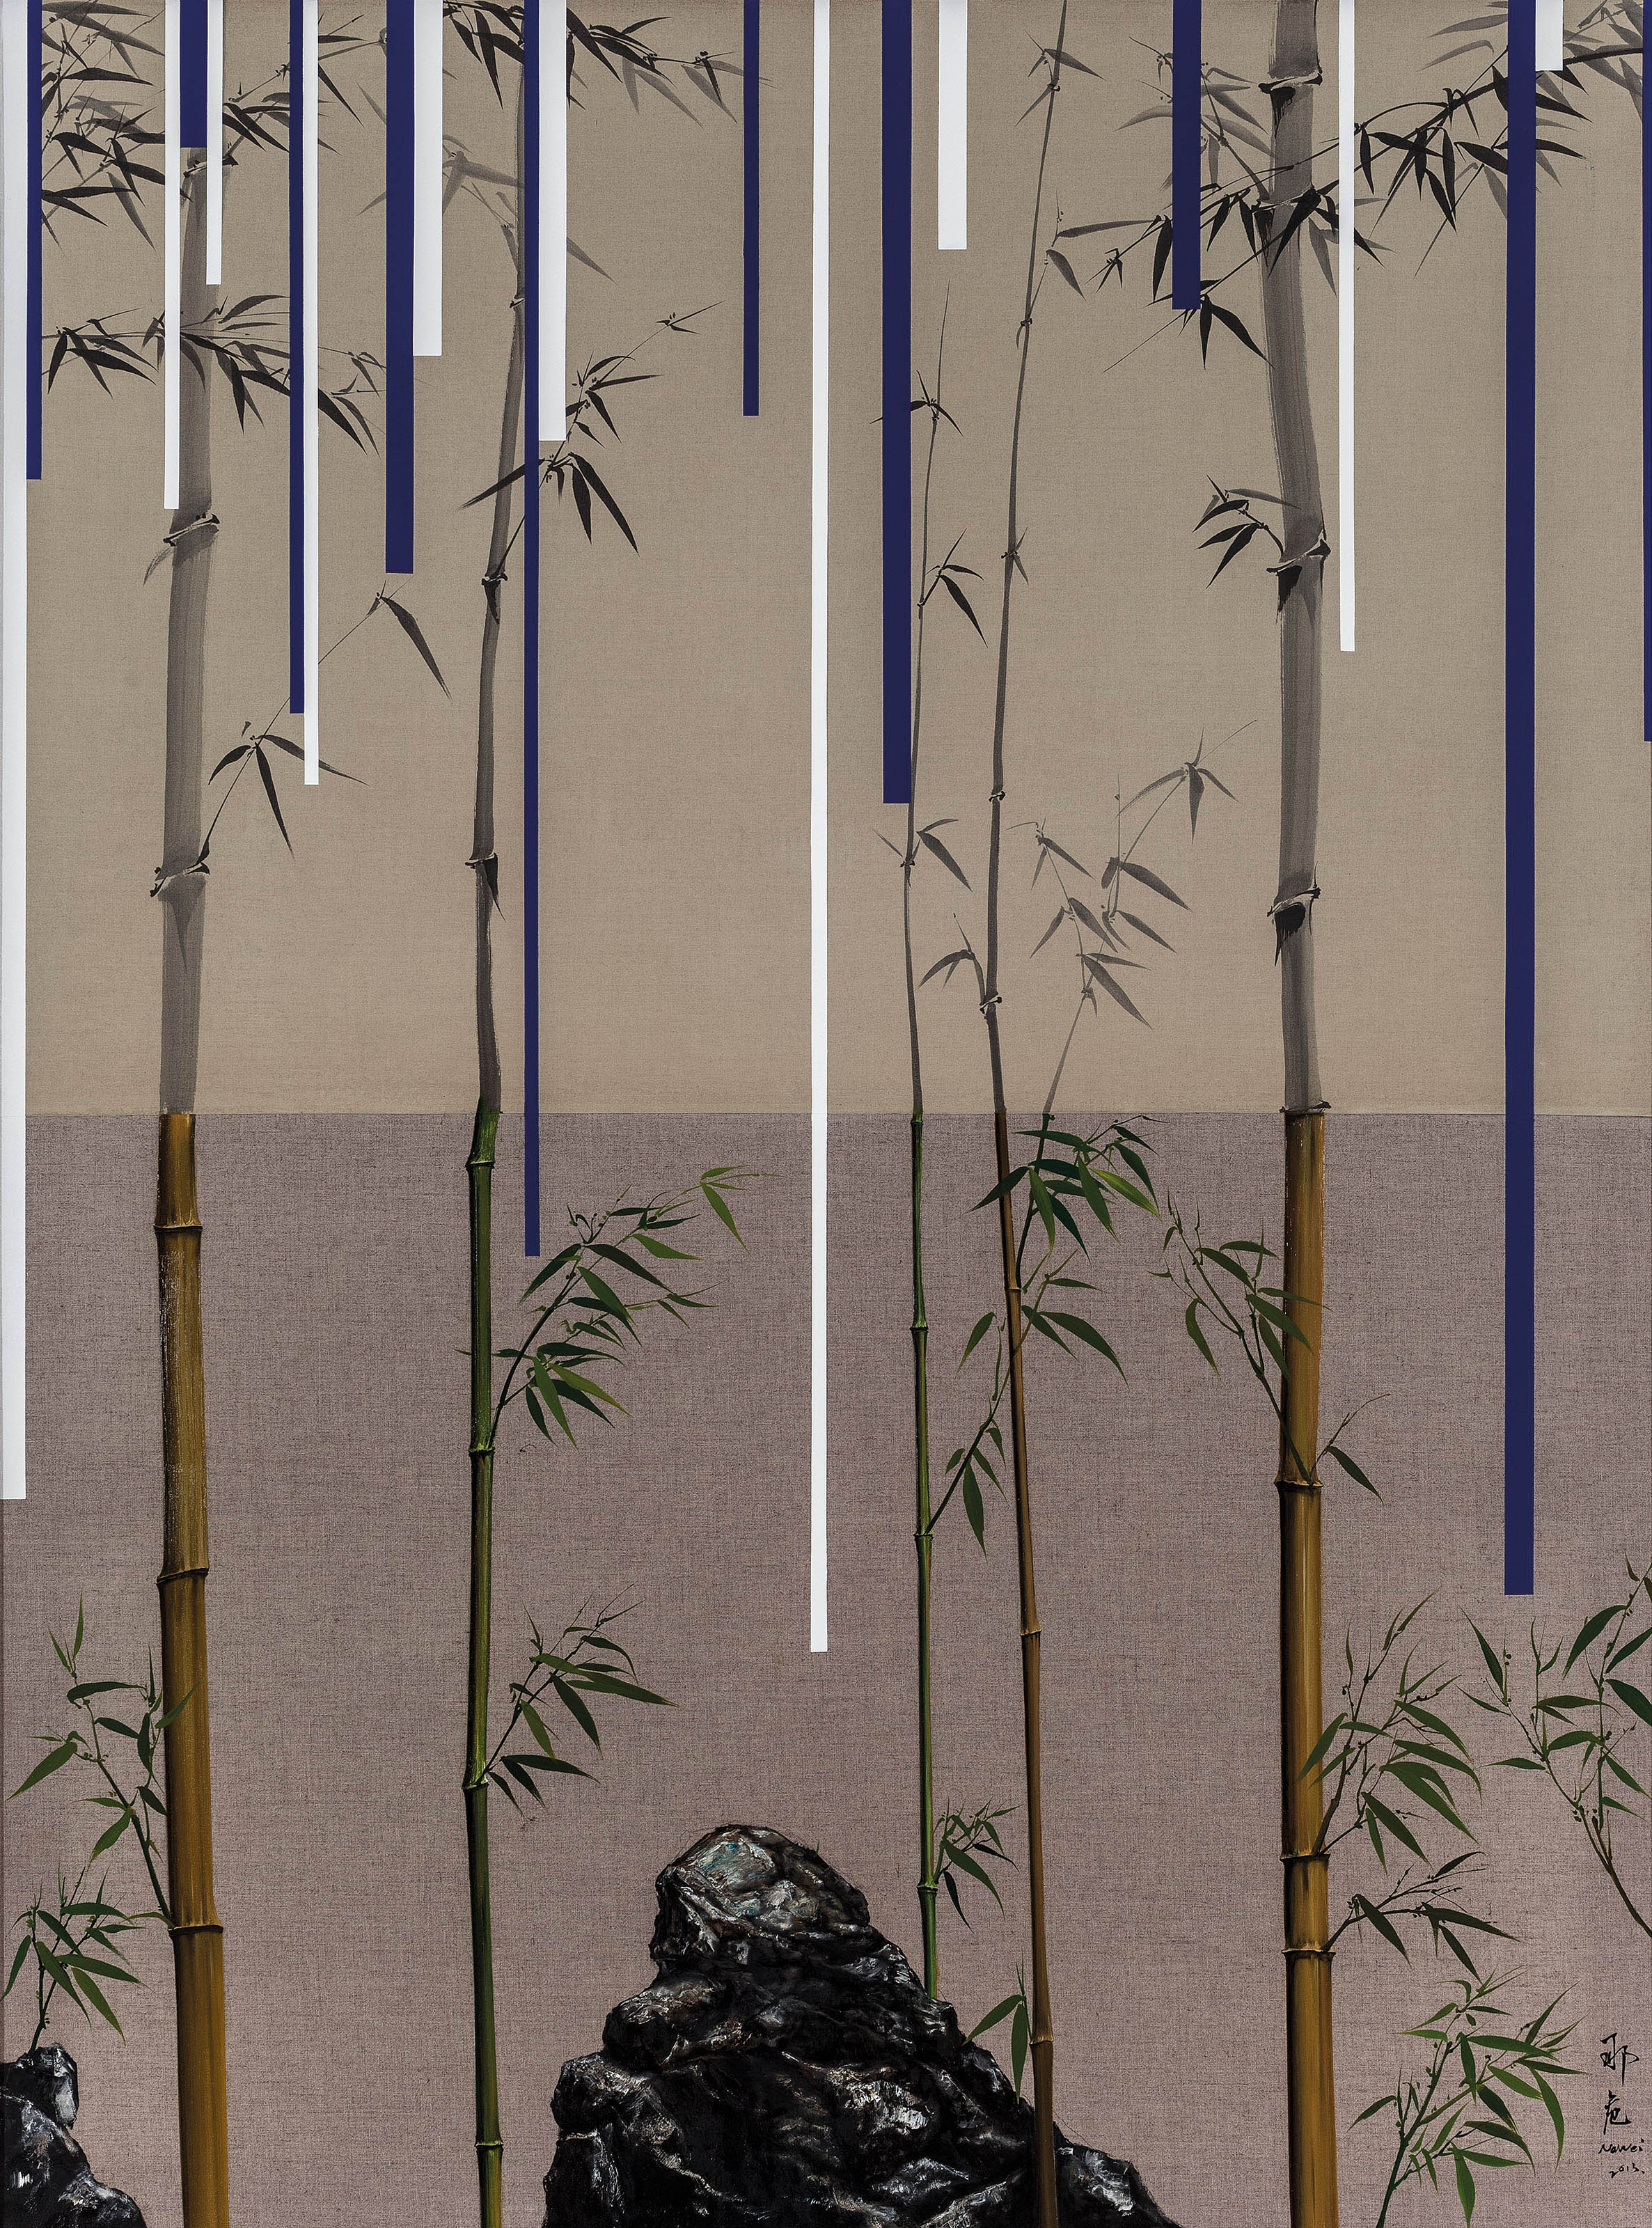 SCENE OF BAMBOO AND STONE